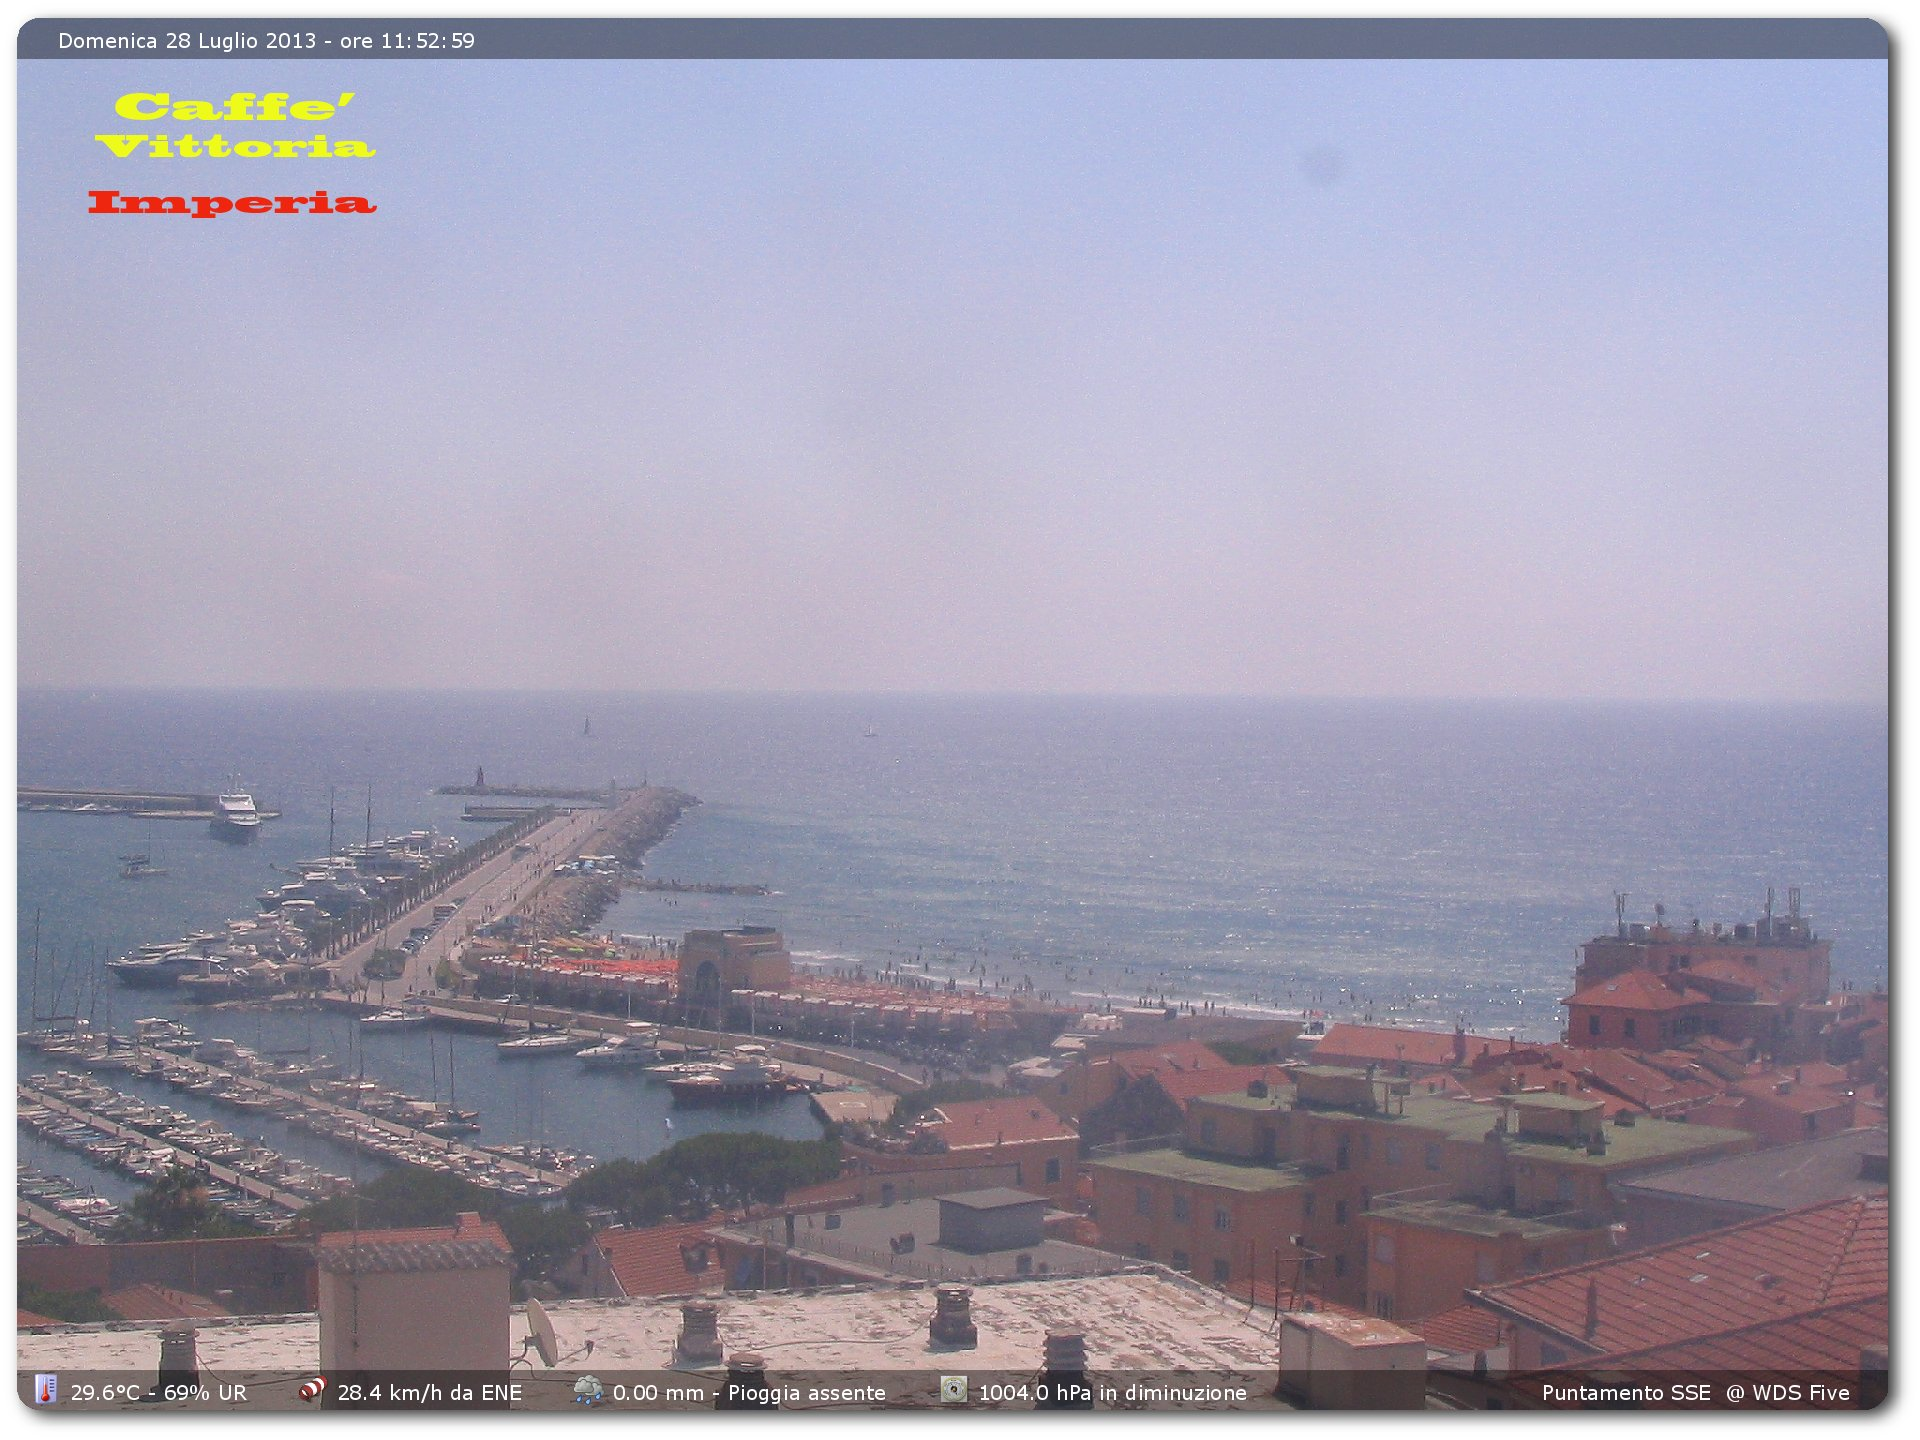 Webcam Imperia - Meteoimperia Live webcamera